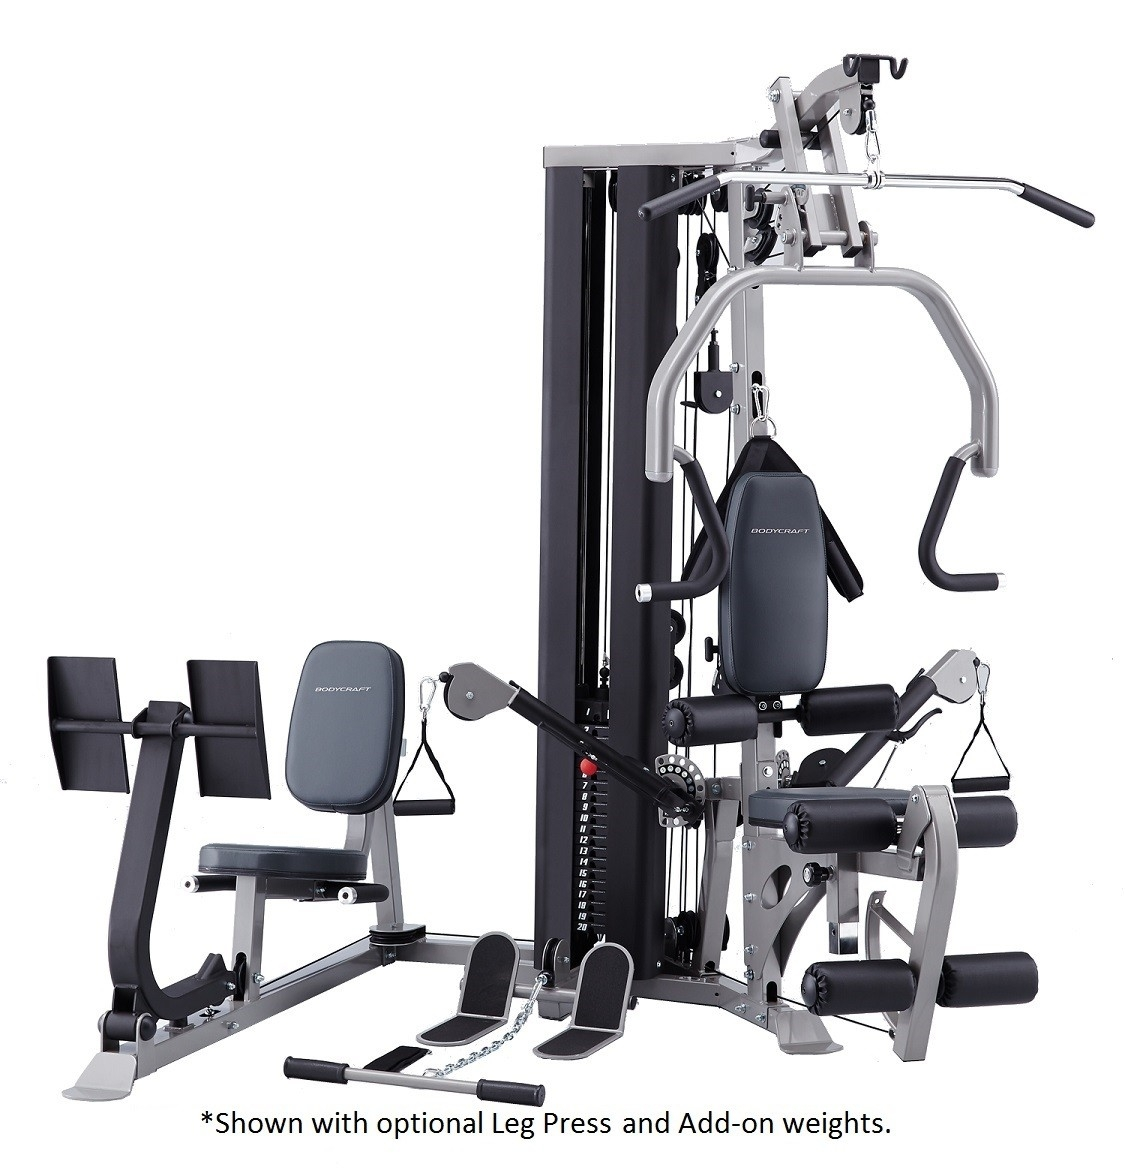 Bodycraft LGX Home Gym